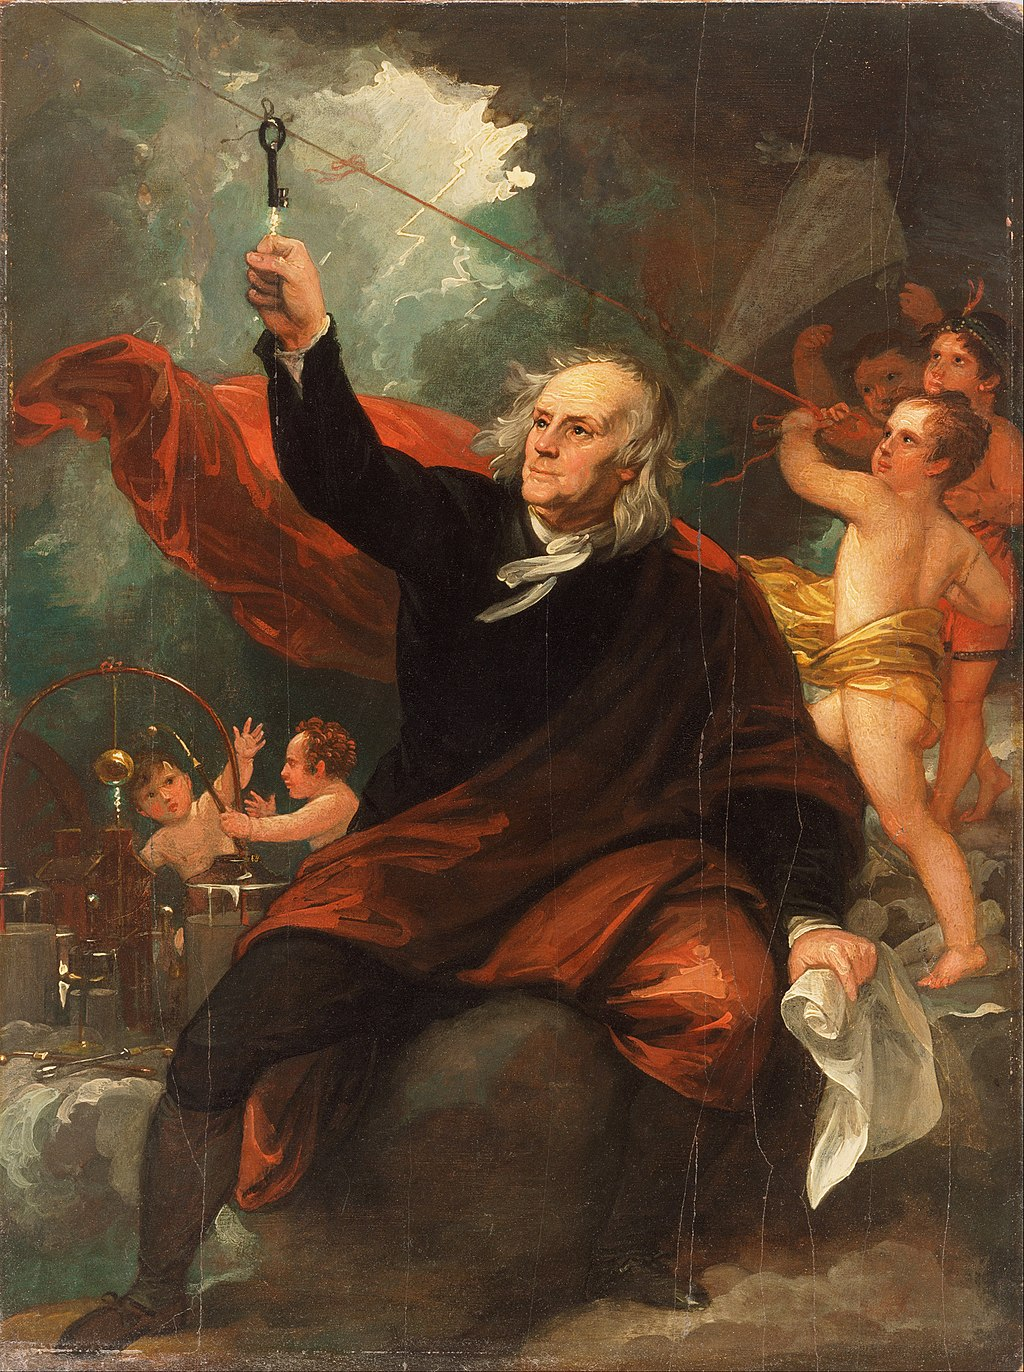 Benjamin Franklin Drawing Electricity from the Sky: Painting by Benjamin West, circa 1816. Founding Fathers such as Benjamin Franklin often cited Scripture.